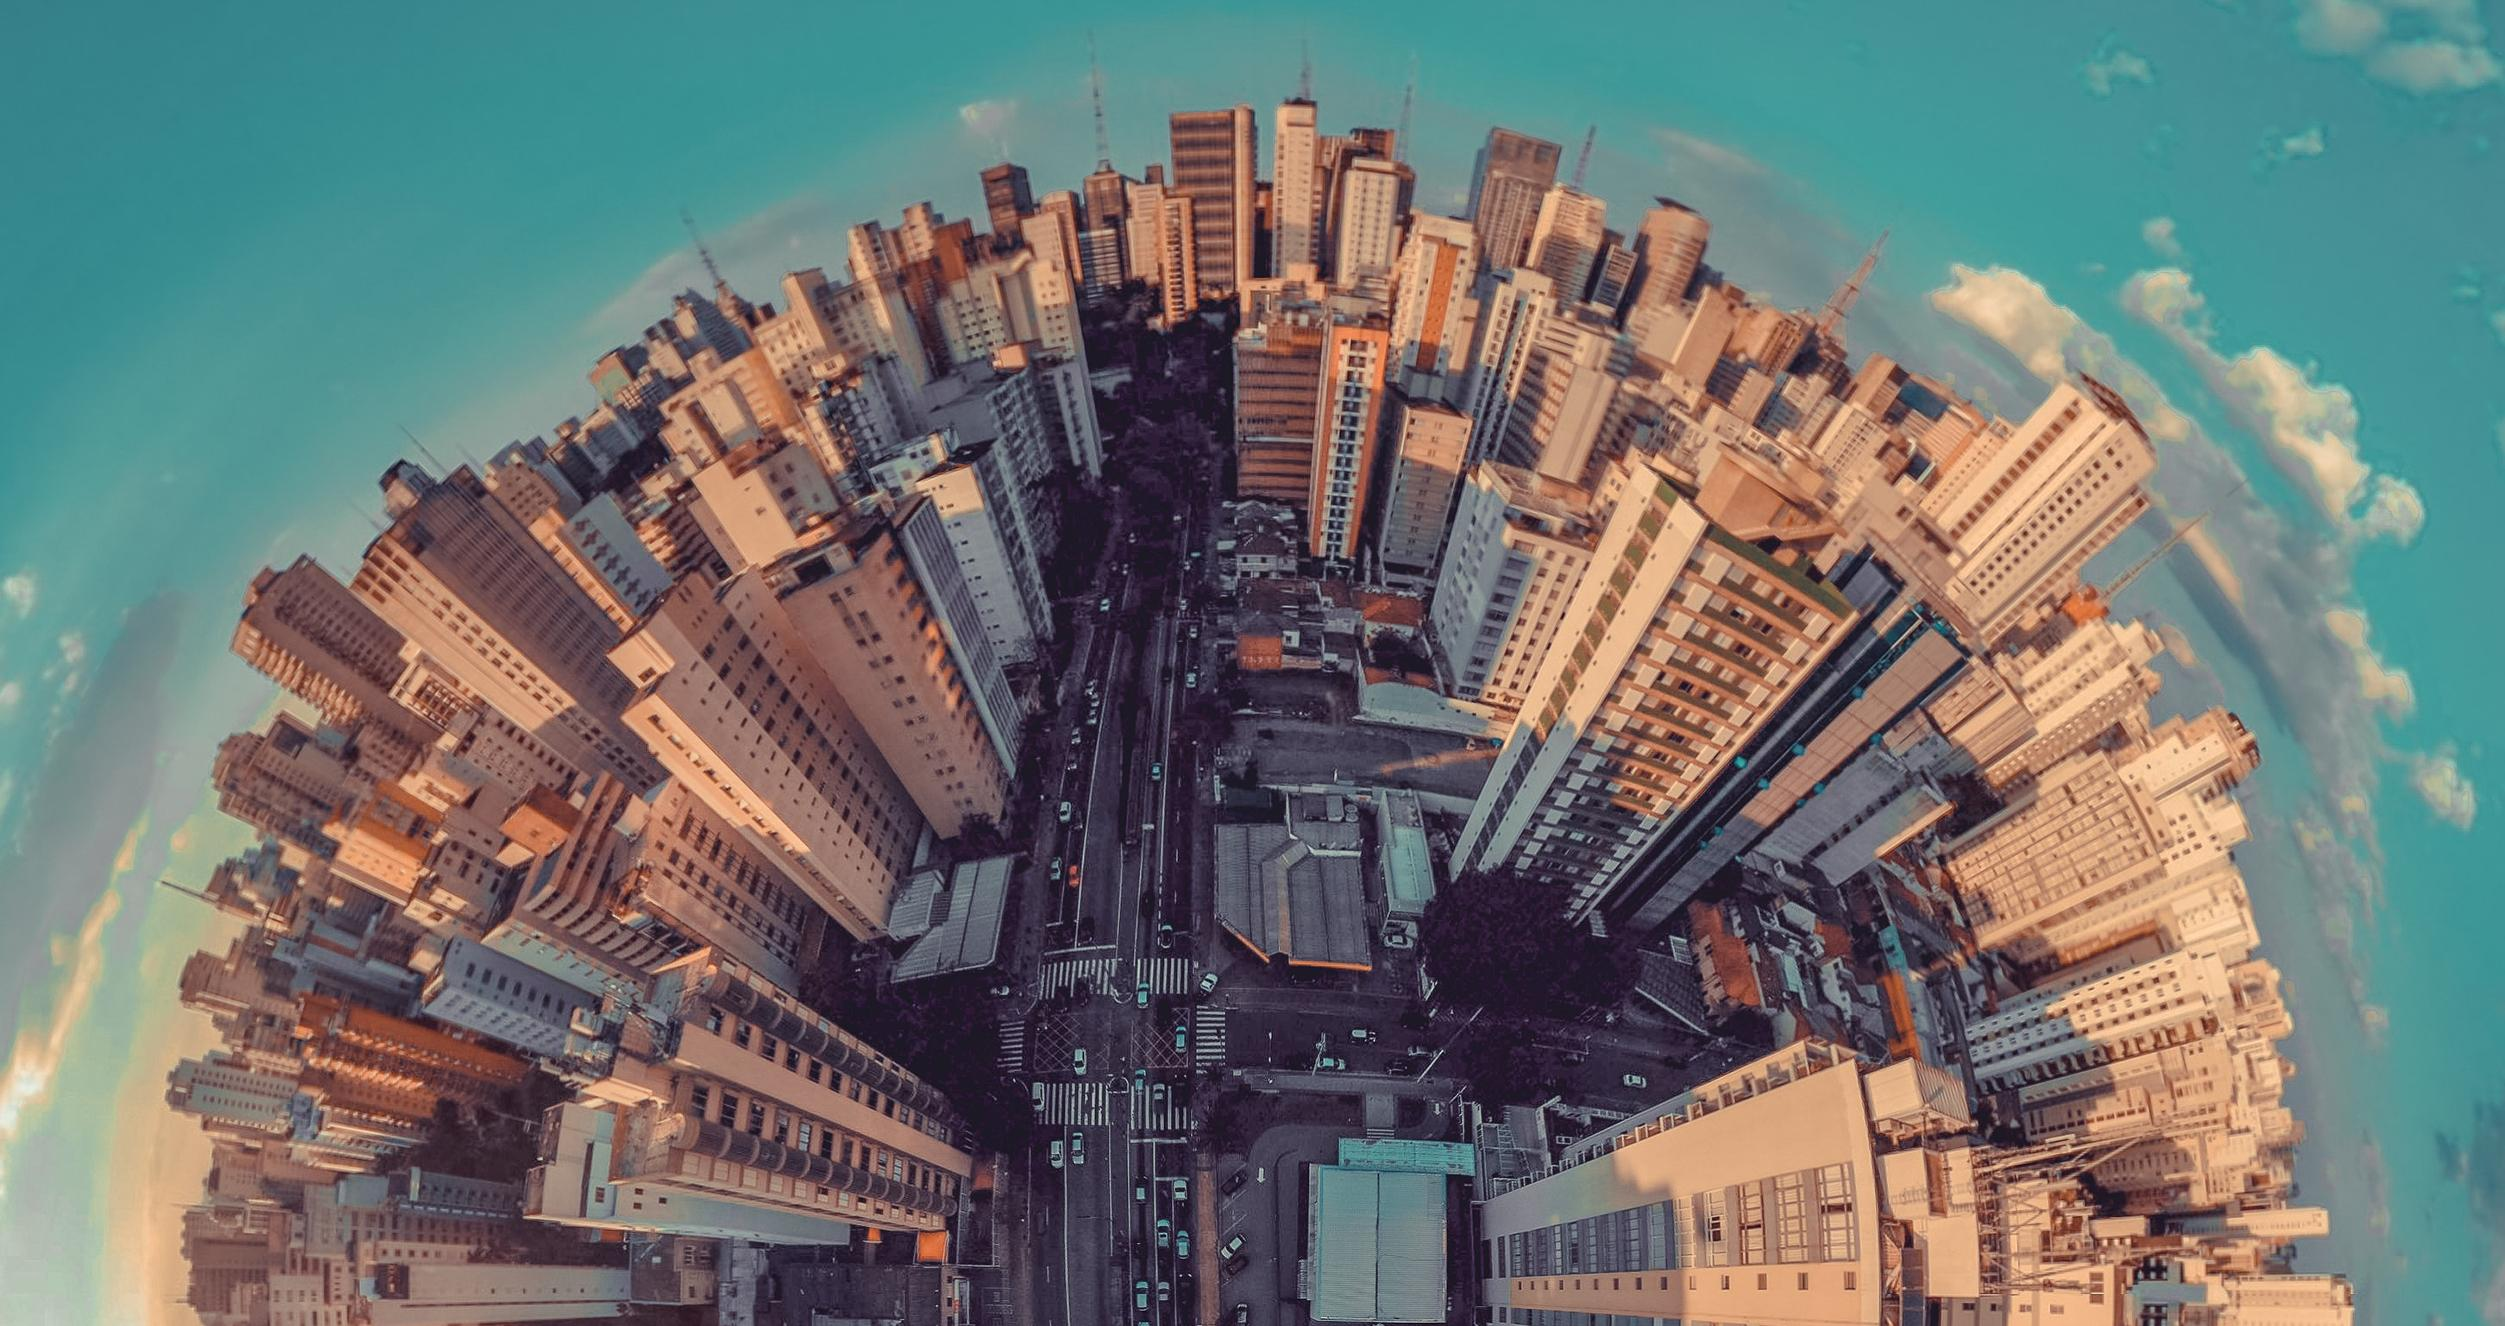 Fisheye city from above